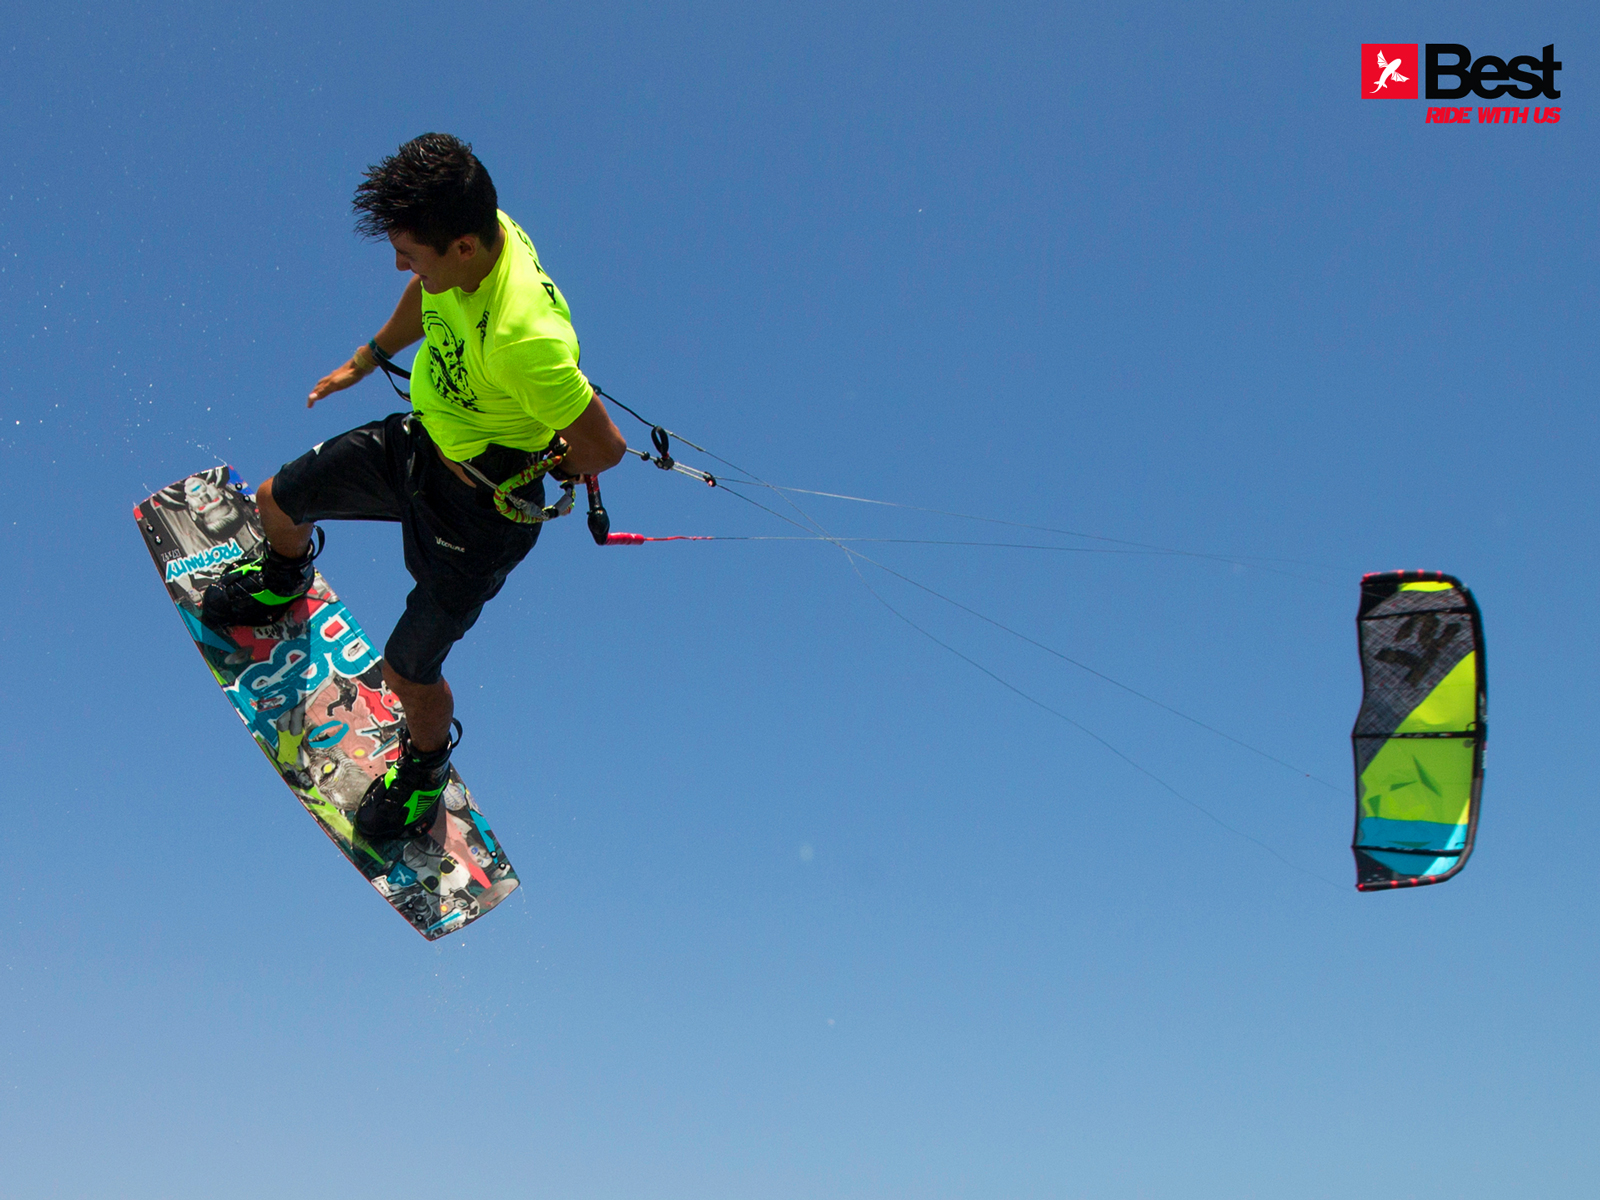 kitesurf wallpaper image - Alexandre Neto with a nice session back home in Brazil on the 2015 Best kiteboarding TS and Profanity board - kitesurfing - in resolution: Standard 4:3 1600 X 1200